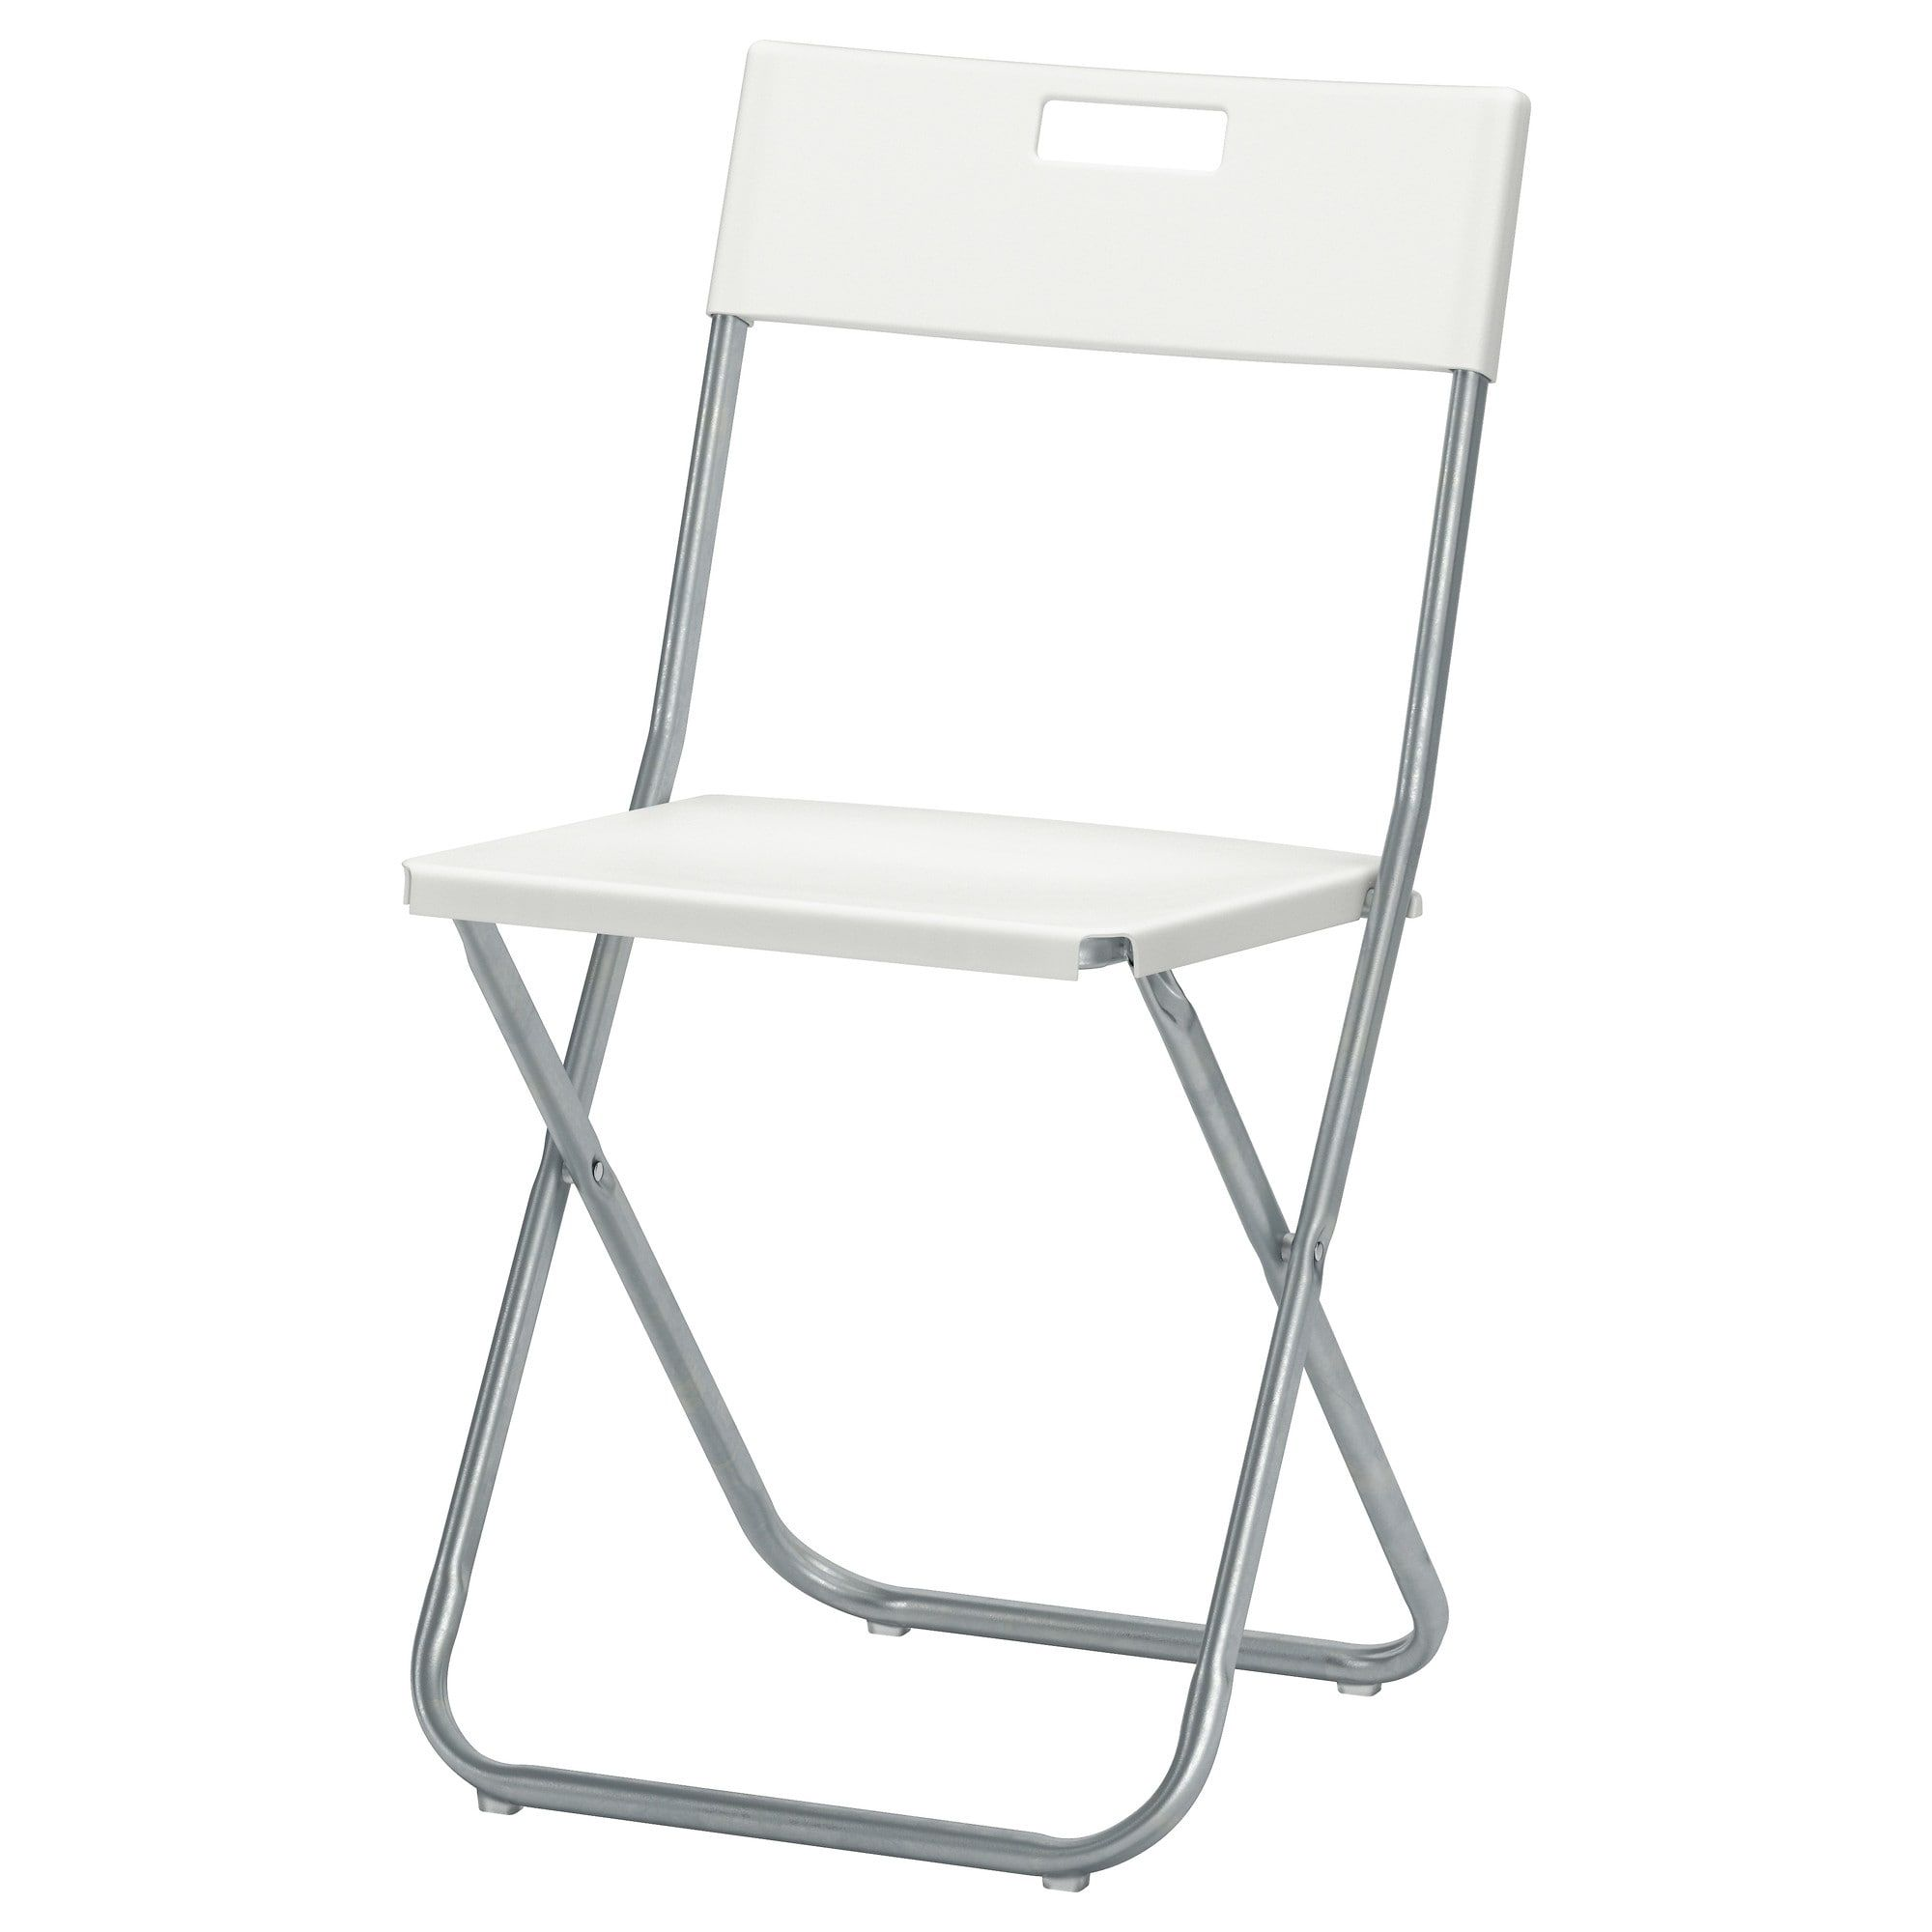 IKEA GUNDE Folding chair white Flavor inn Ikea